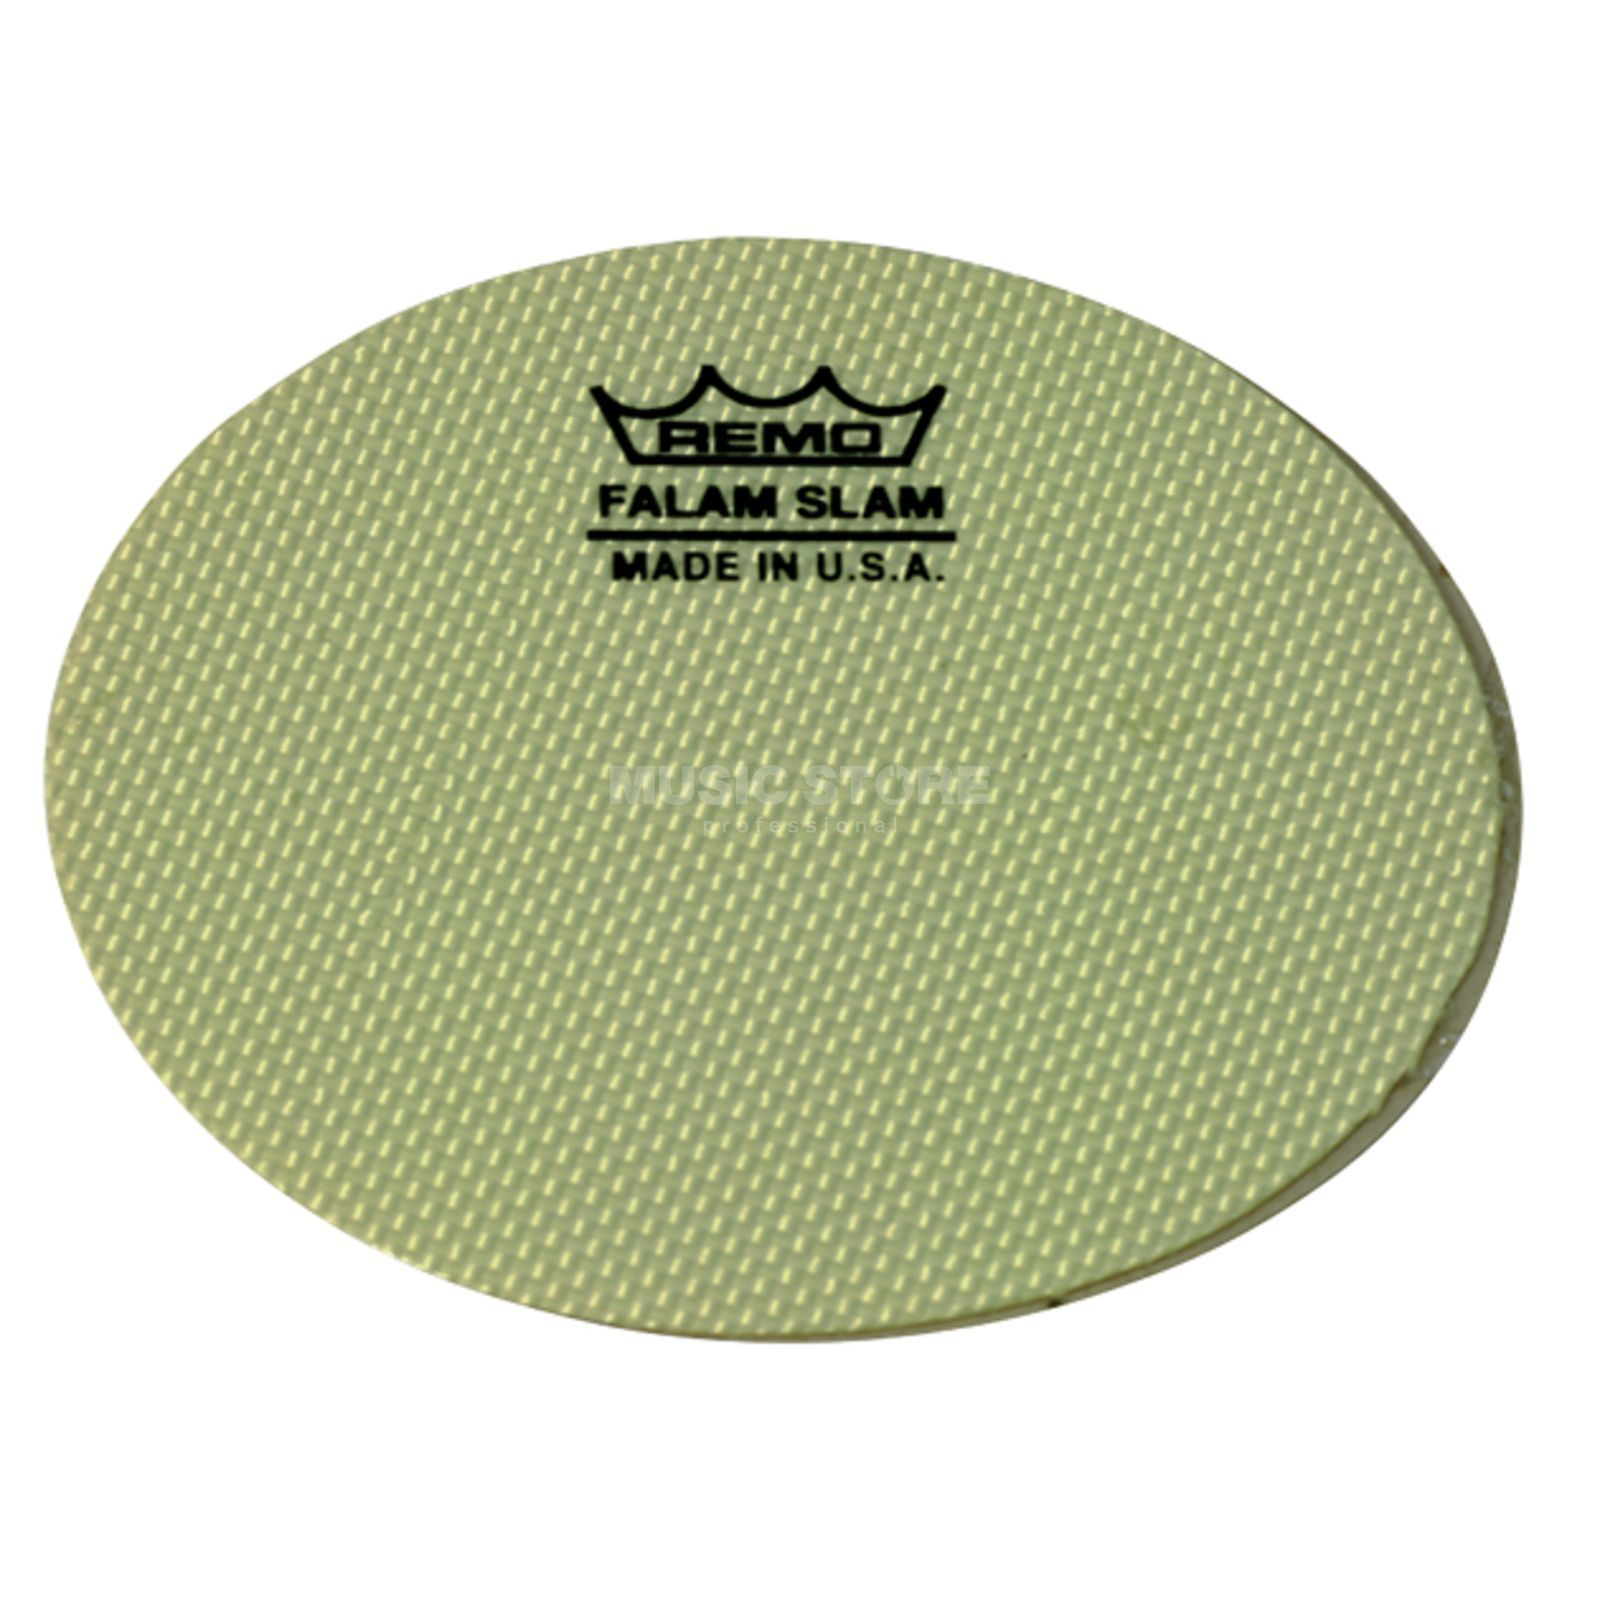 "Remo Falam Slam Pad KS-0004-PH, 4"", Single BassDrum Pad Produktbild"